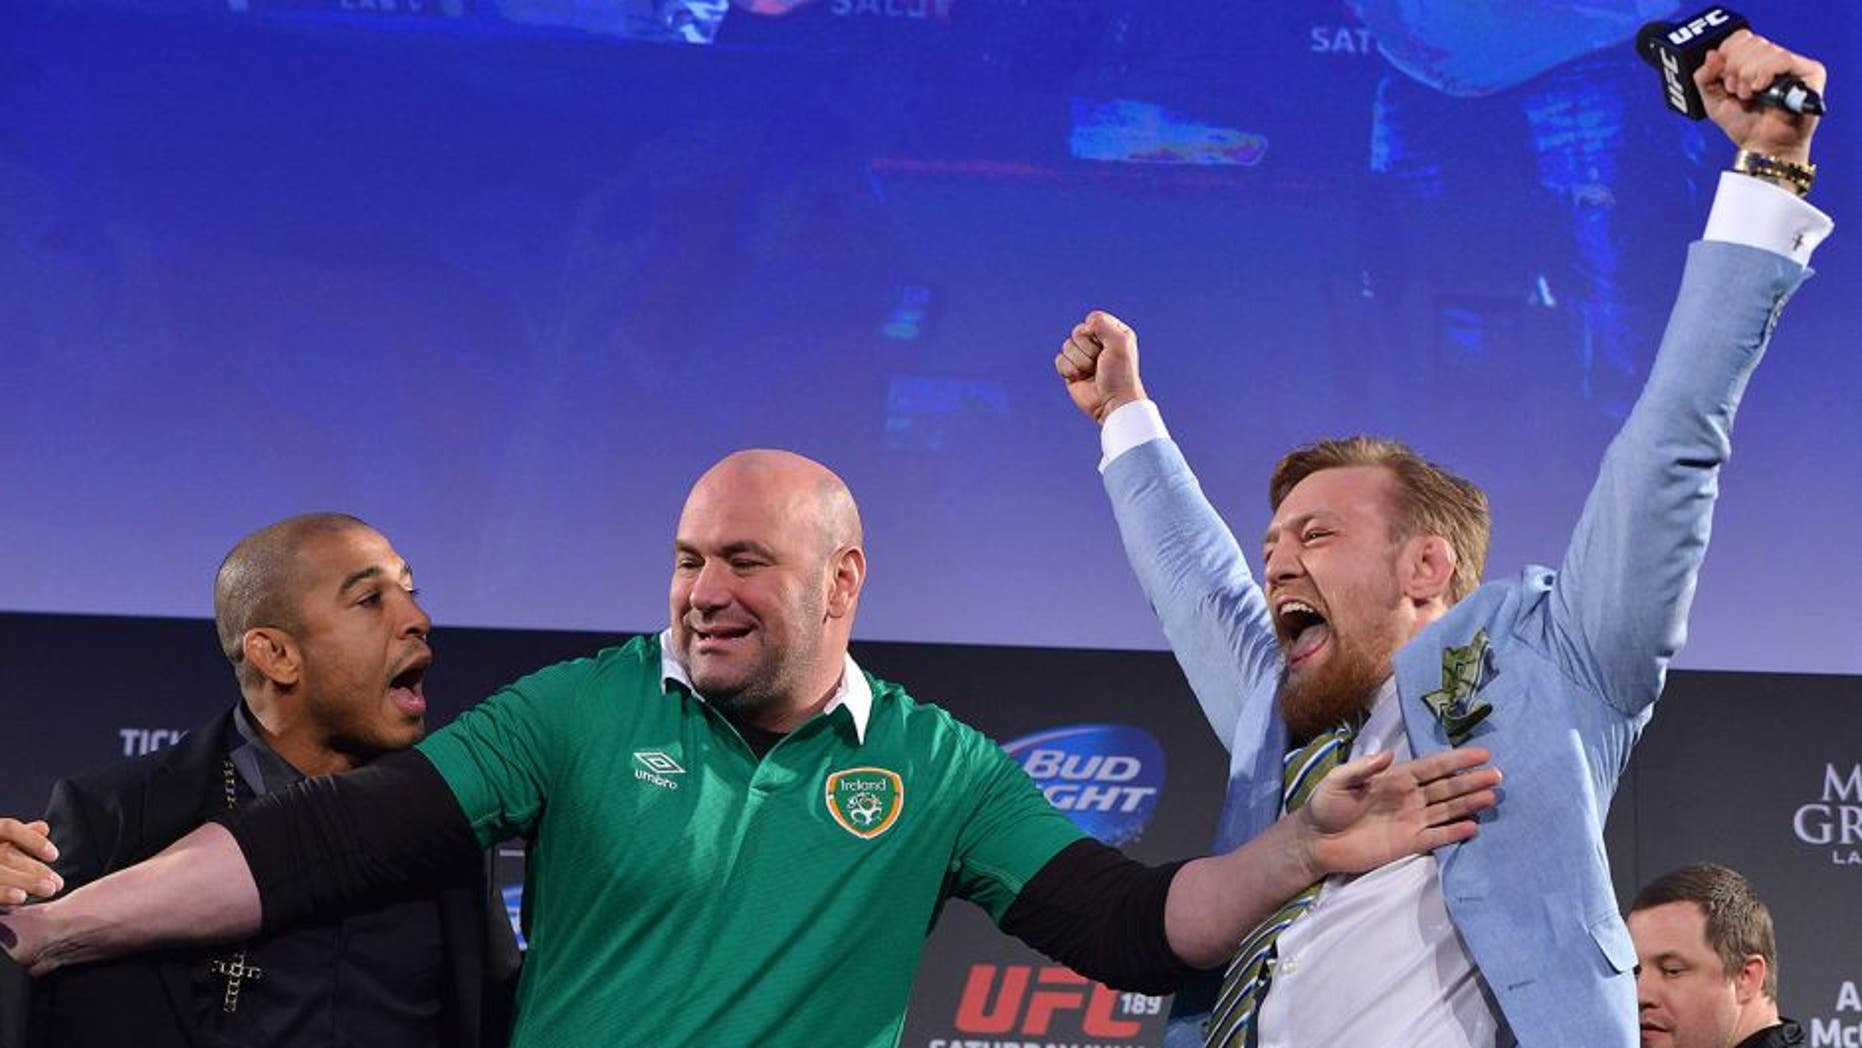 DUBLIN, IRELAND - MARCH 31: UFC featherweight title challenger Conor 'The Notorious' McGregor (R) steals UFC Featherweight Champion Jose Aldo's (L) belt as UFC President Dana White (C) separates the two during the UFC 189 World Championship Fan Event on March 31, 2015 in Dublin, Ireland. (Photo by Jeff Bottari/Zuffa LLC/Zuffa LLC via Getty Images)